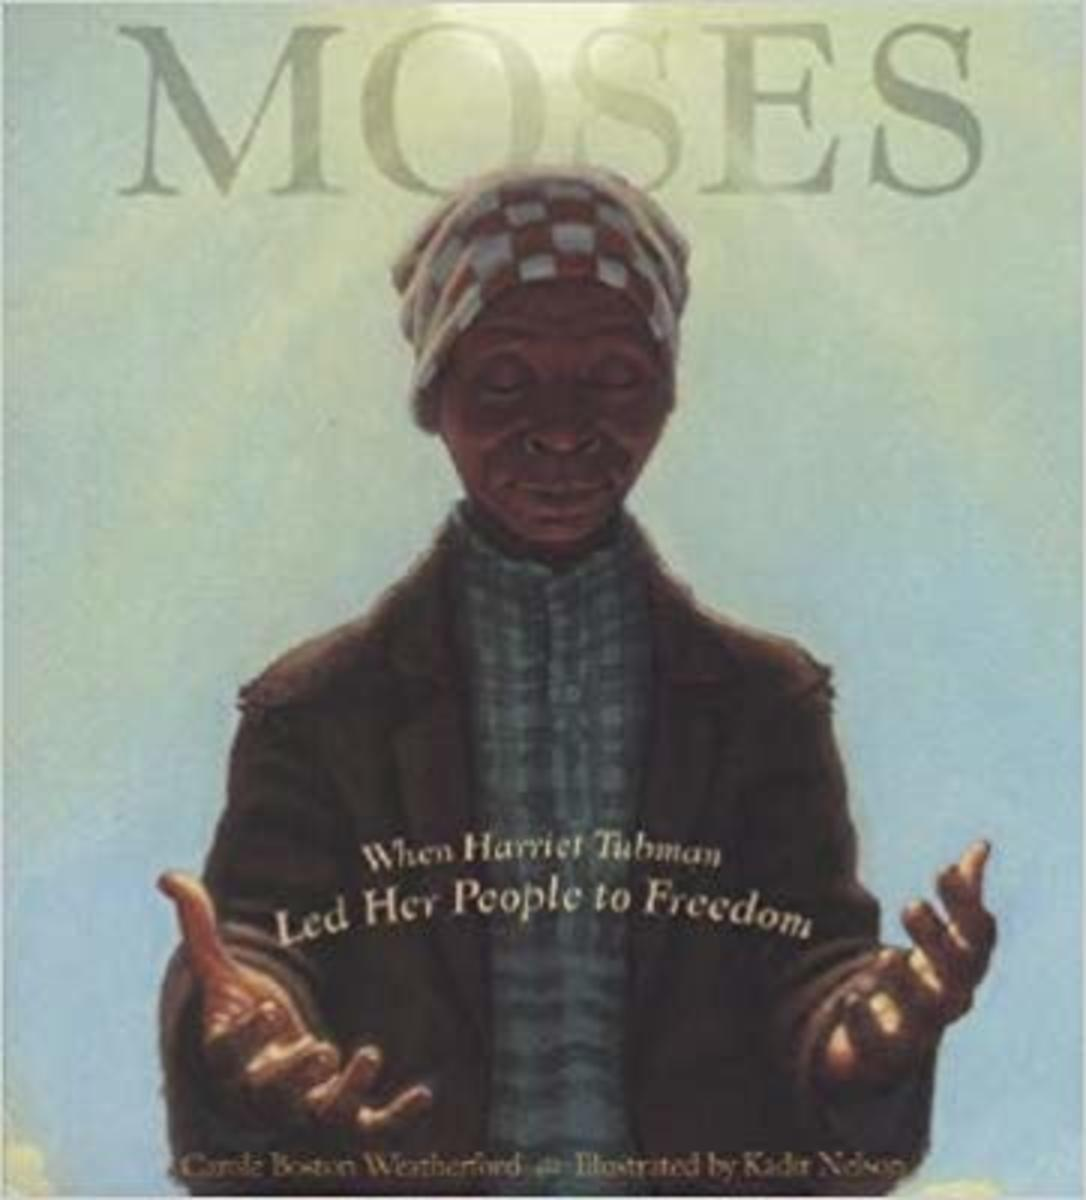 Moses: When Harriet Tubman Led Her People to Freedom (Caldecott Honor Book) by Carole Boston Weatherford